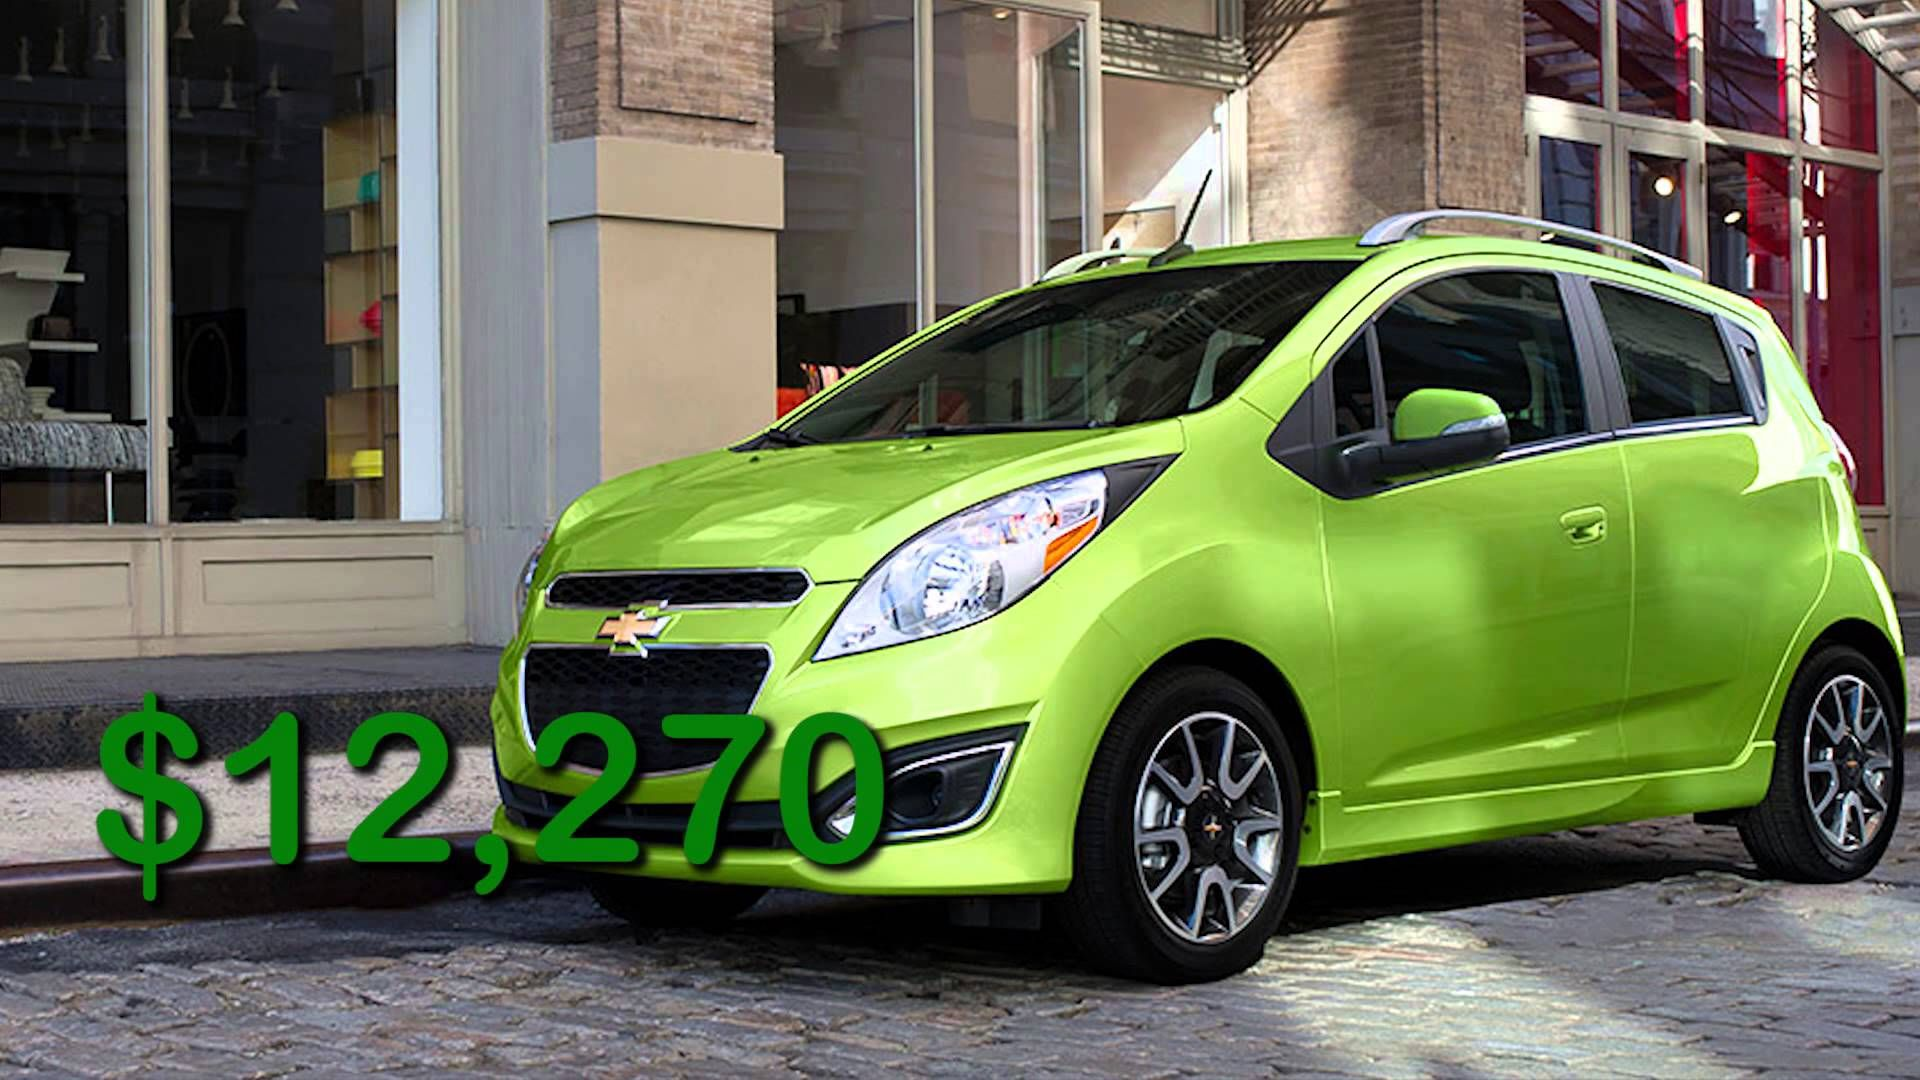 Four Cheapest Cars In America Versa Vs Spark Vs Mirage Vs Fortwo With Images Chevrolet Used Cars Cheap Used Cars